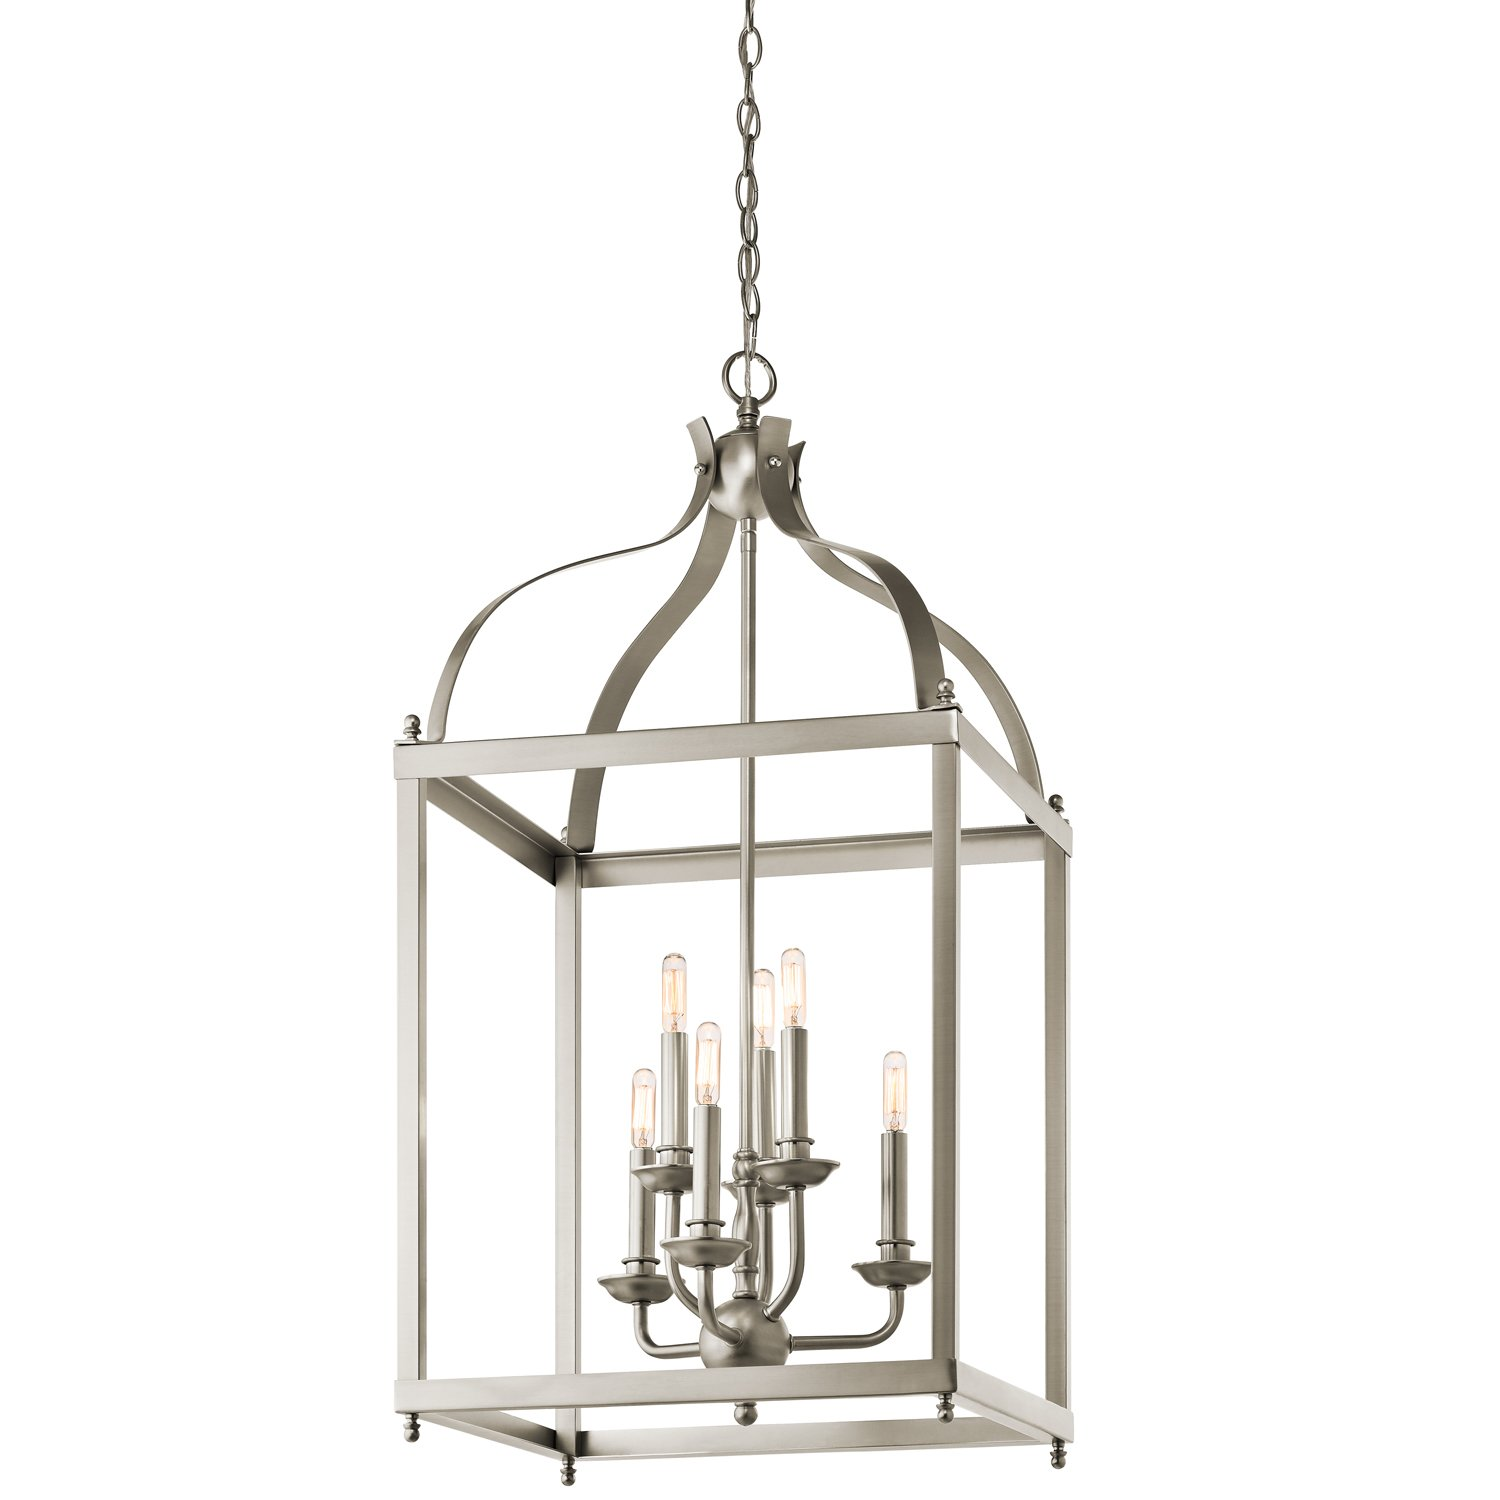 kichler lighting 42568oz larkin 6light foyer pendant olde bronze finish ceiling pendant fixtures amazoncom - Foyer Chandeliers